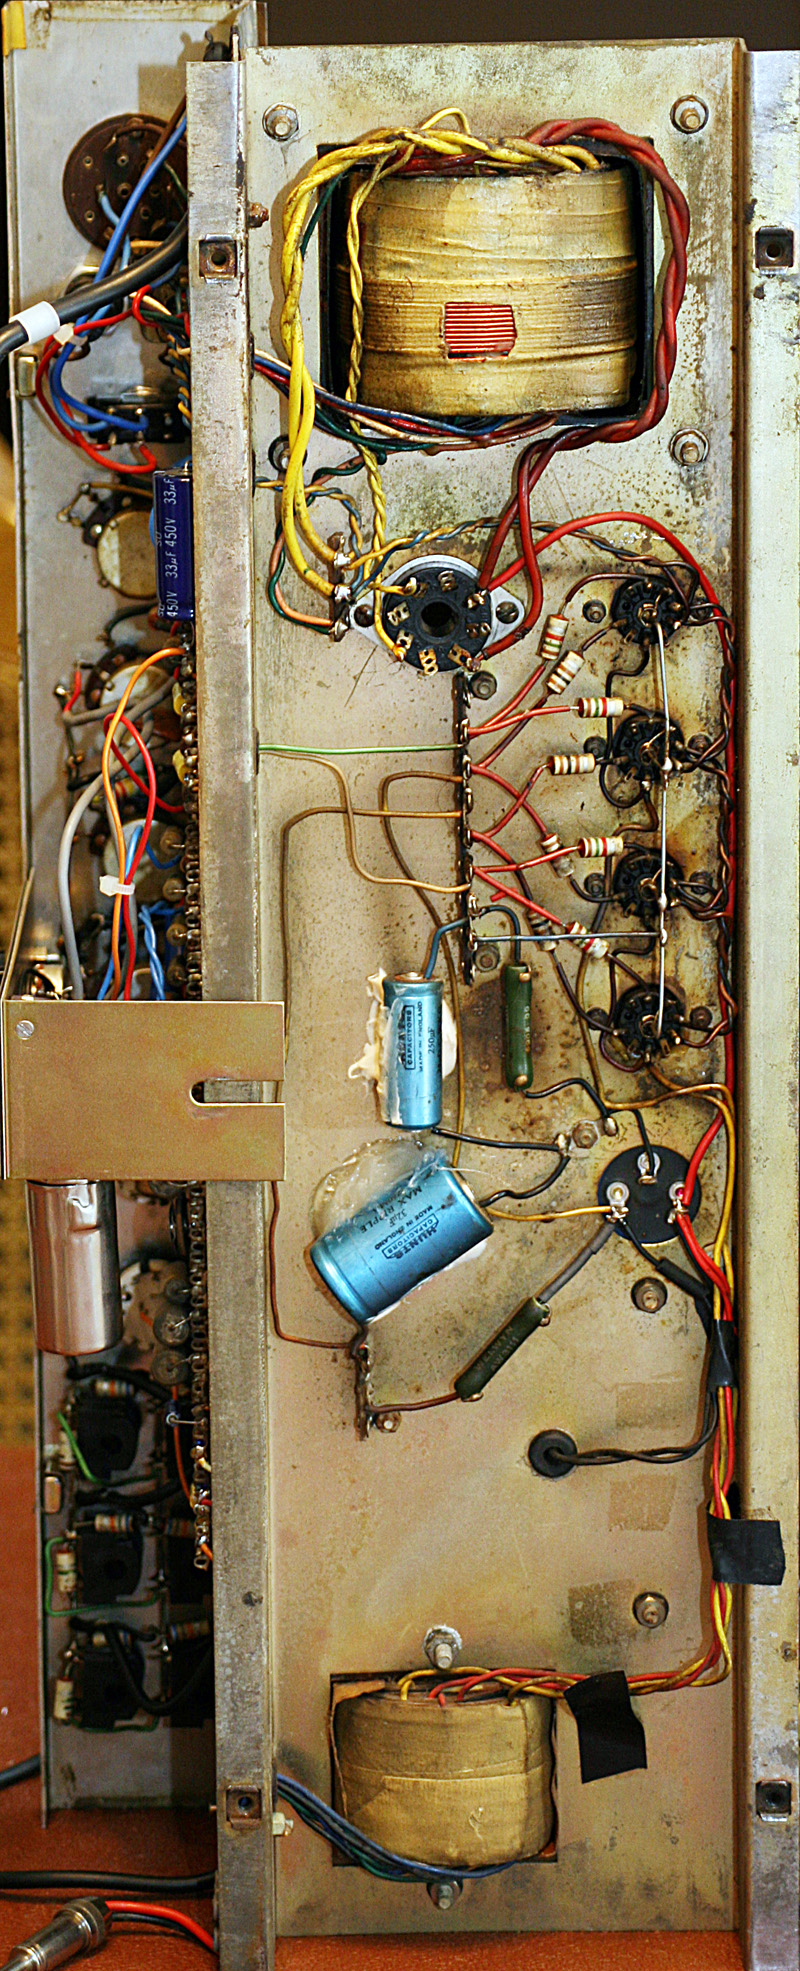 [SCHEMATICS_4US]  Mike Ryde - Brian May   Vox Ac30 Wiring      Mike Ryde - Brian May